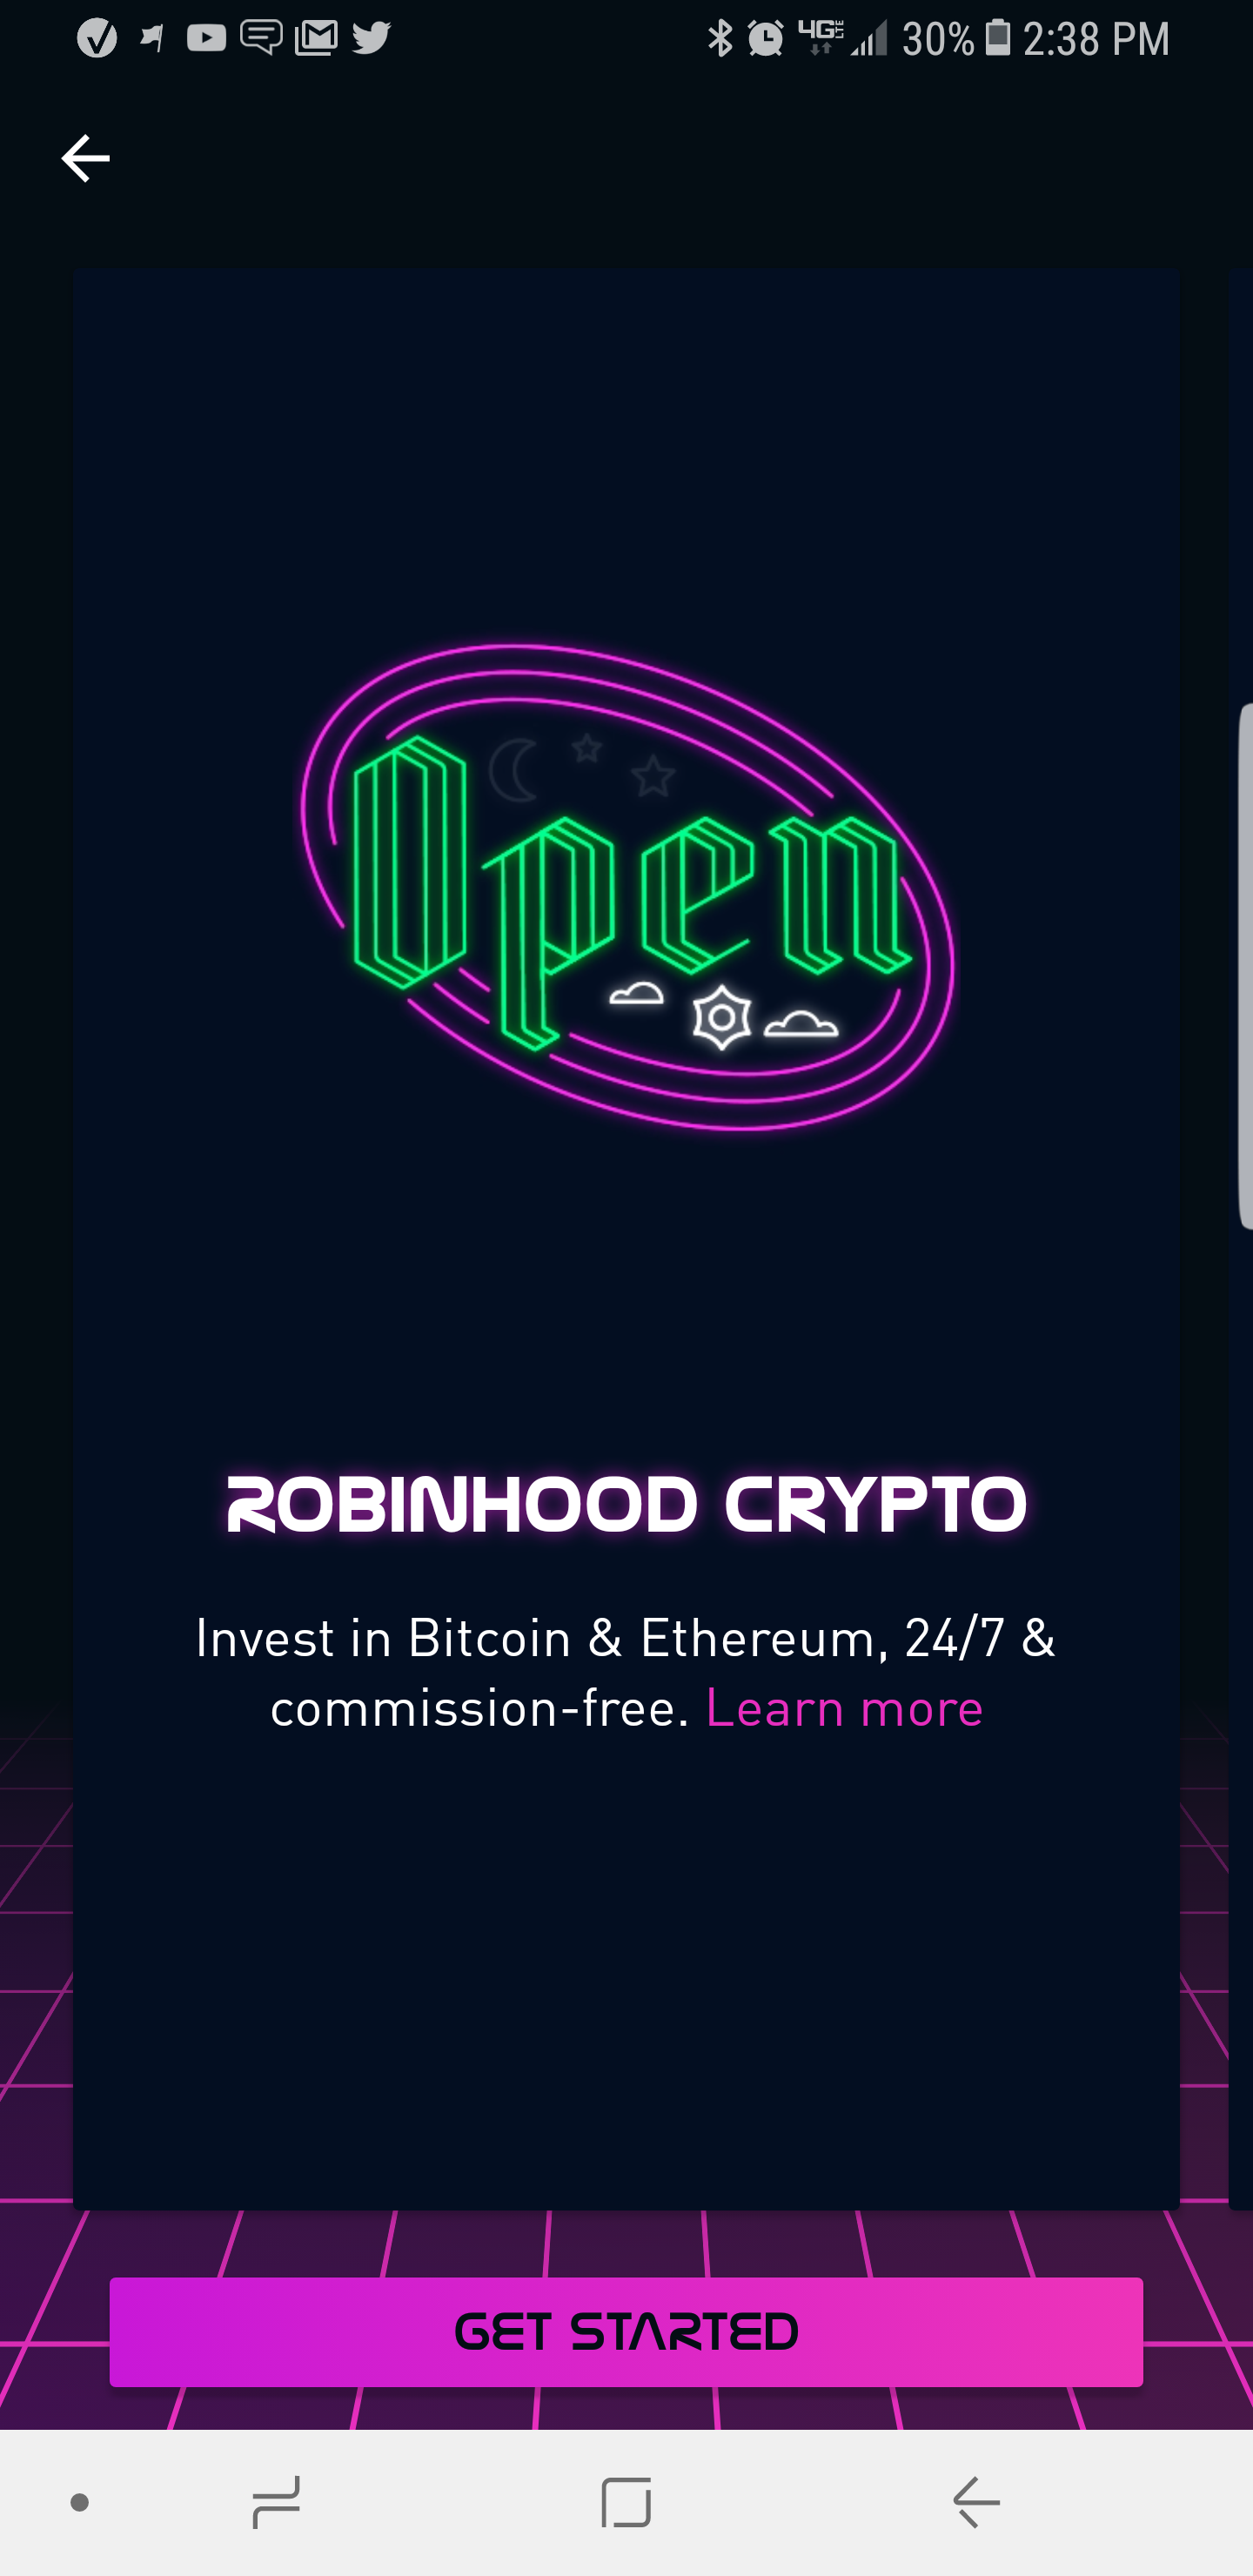 how does investing in cryptocurrency work with robinhood